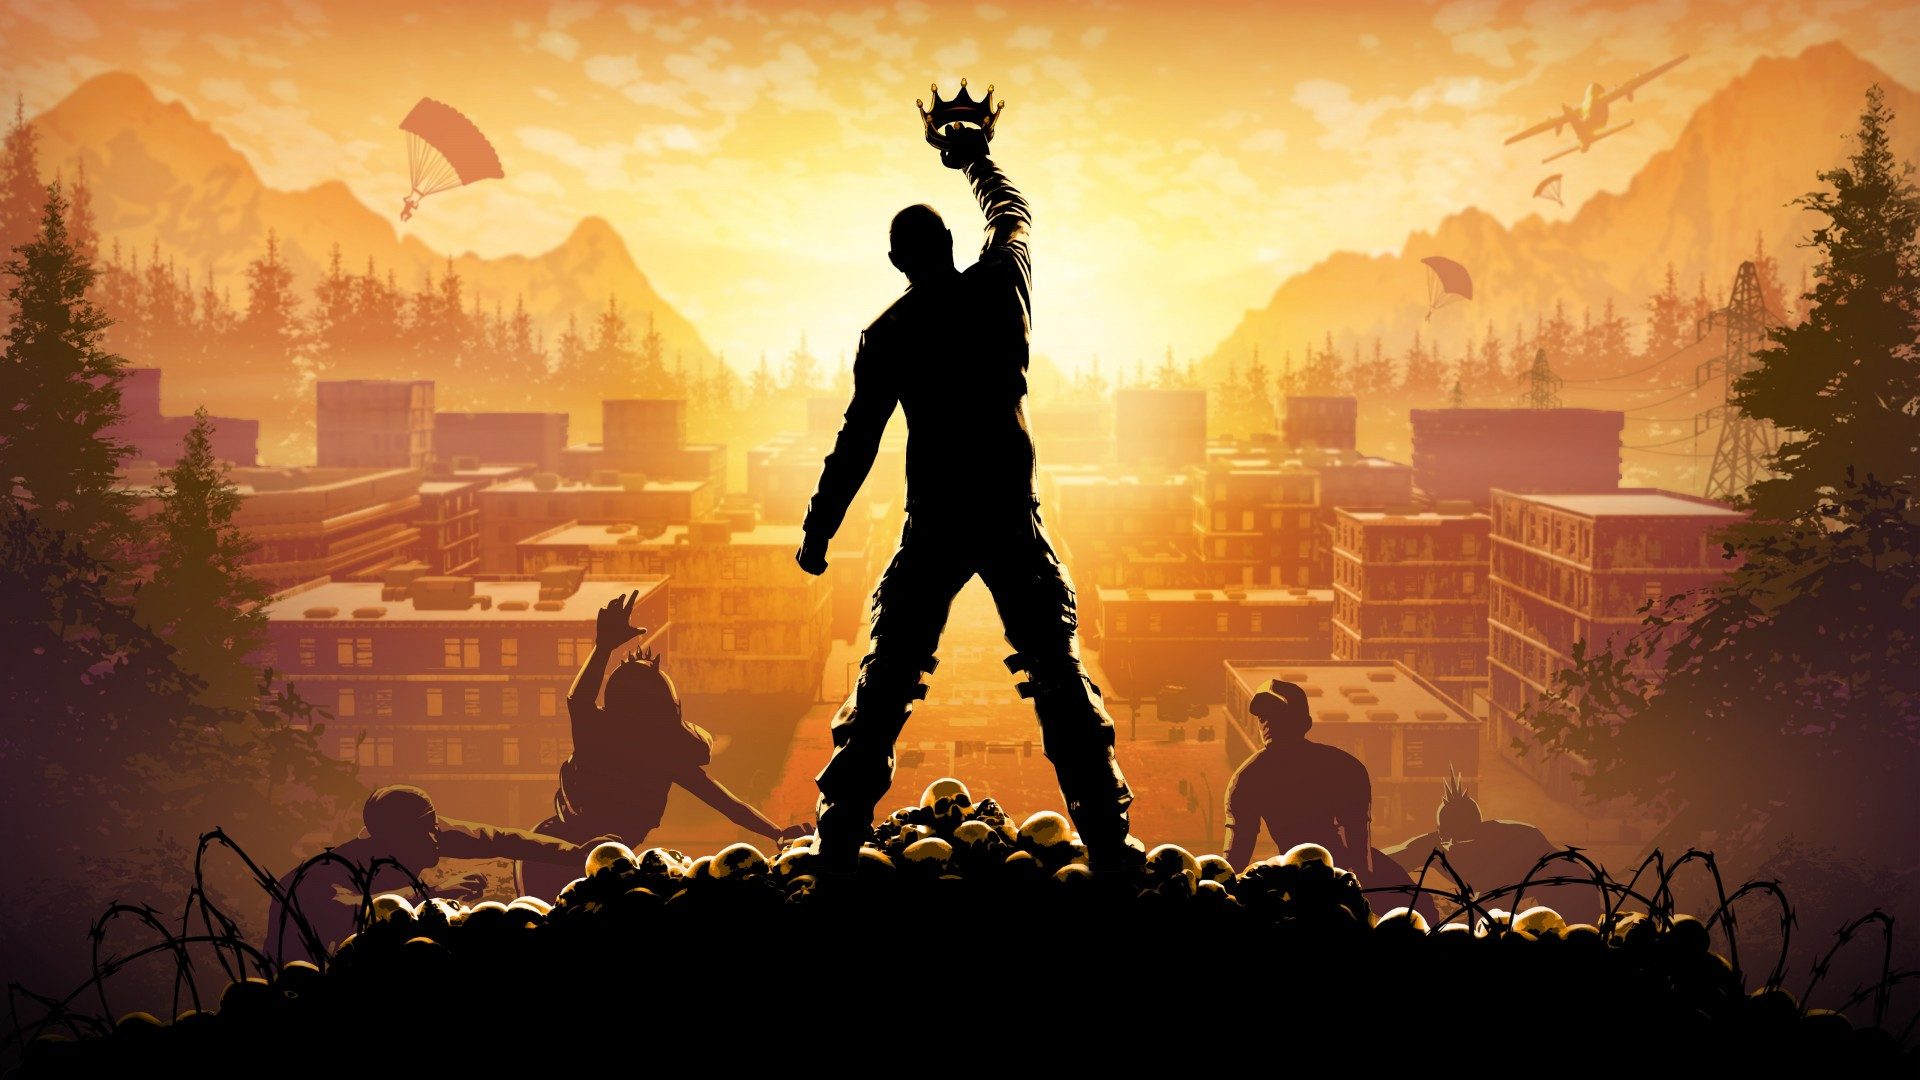 download 1920x1080 h1z1 king